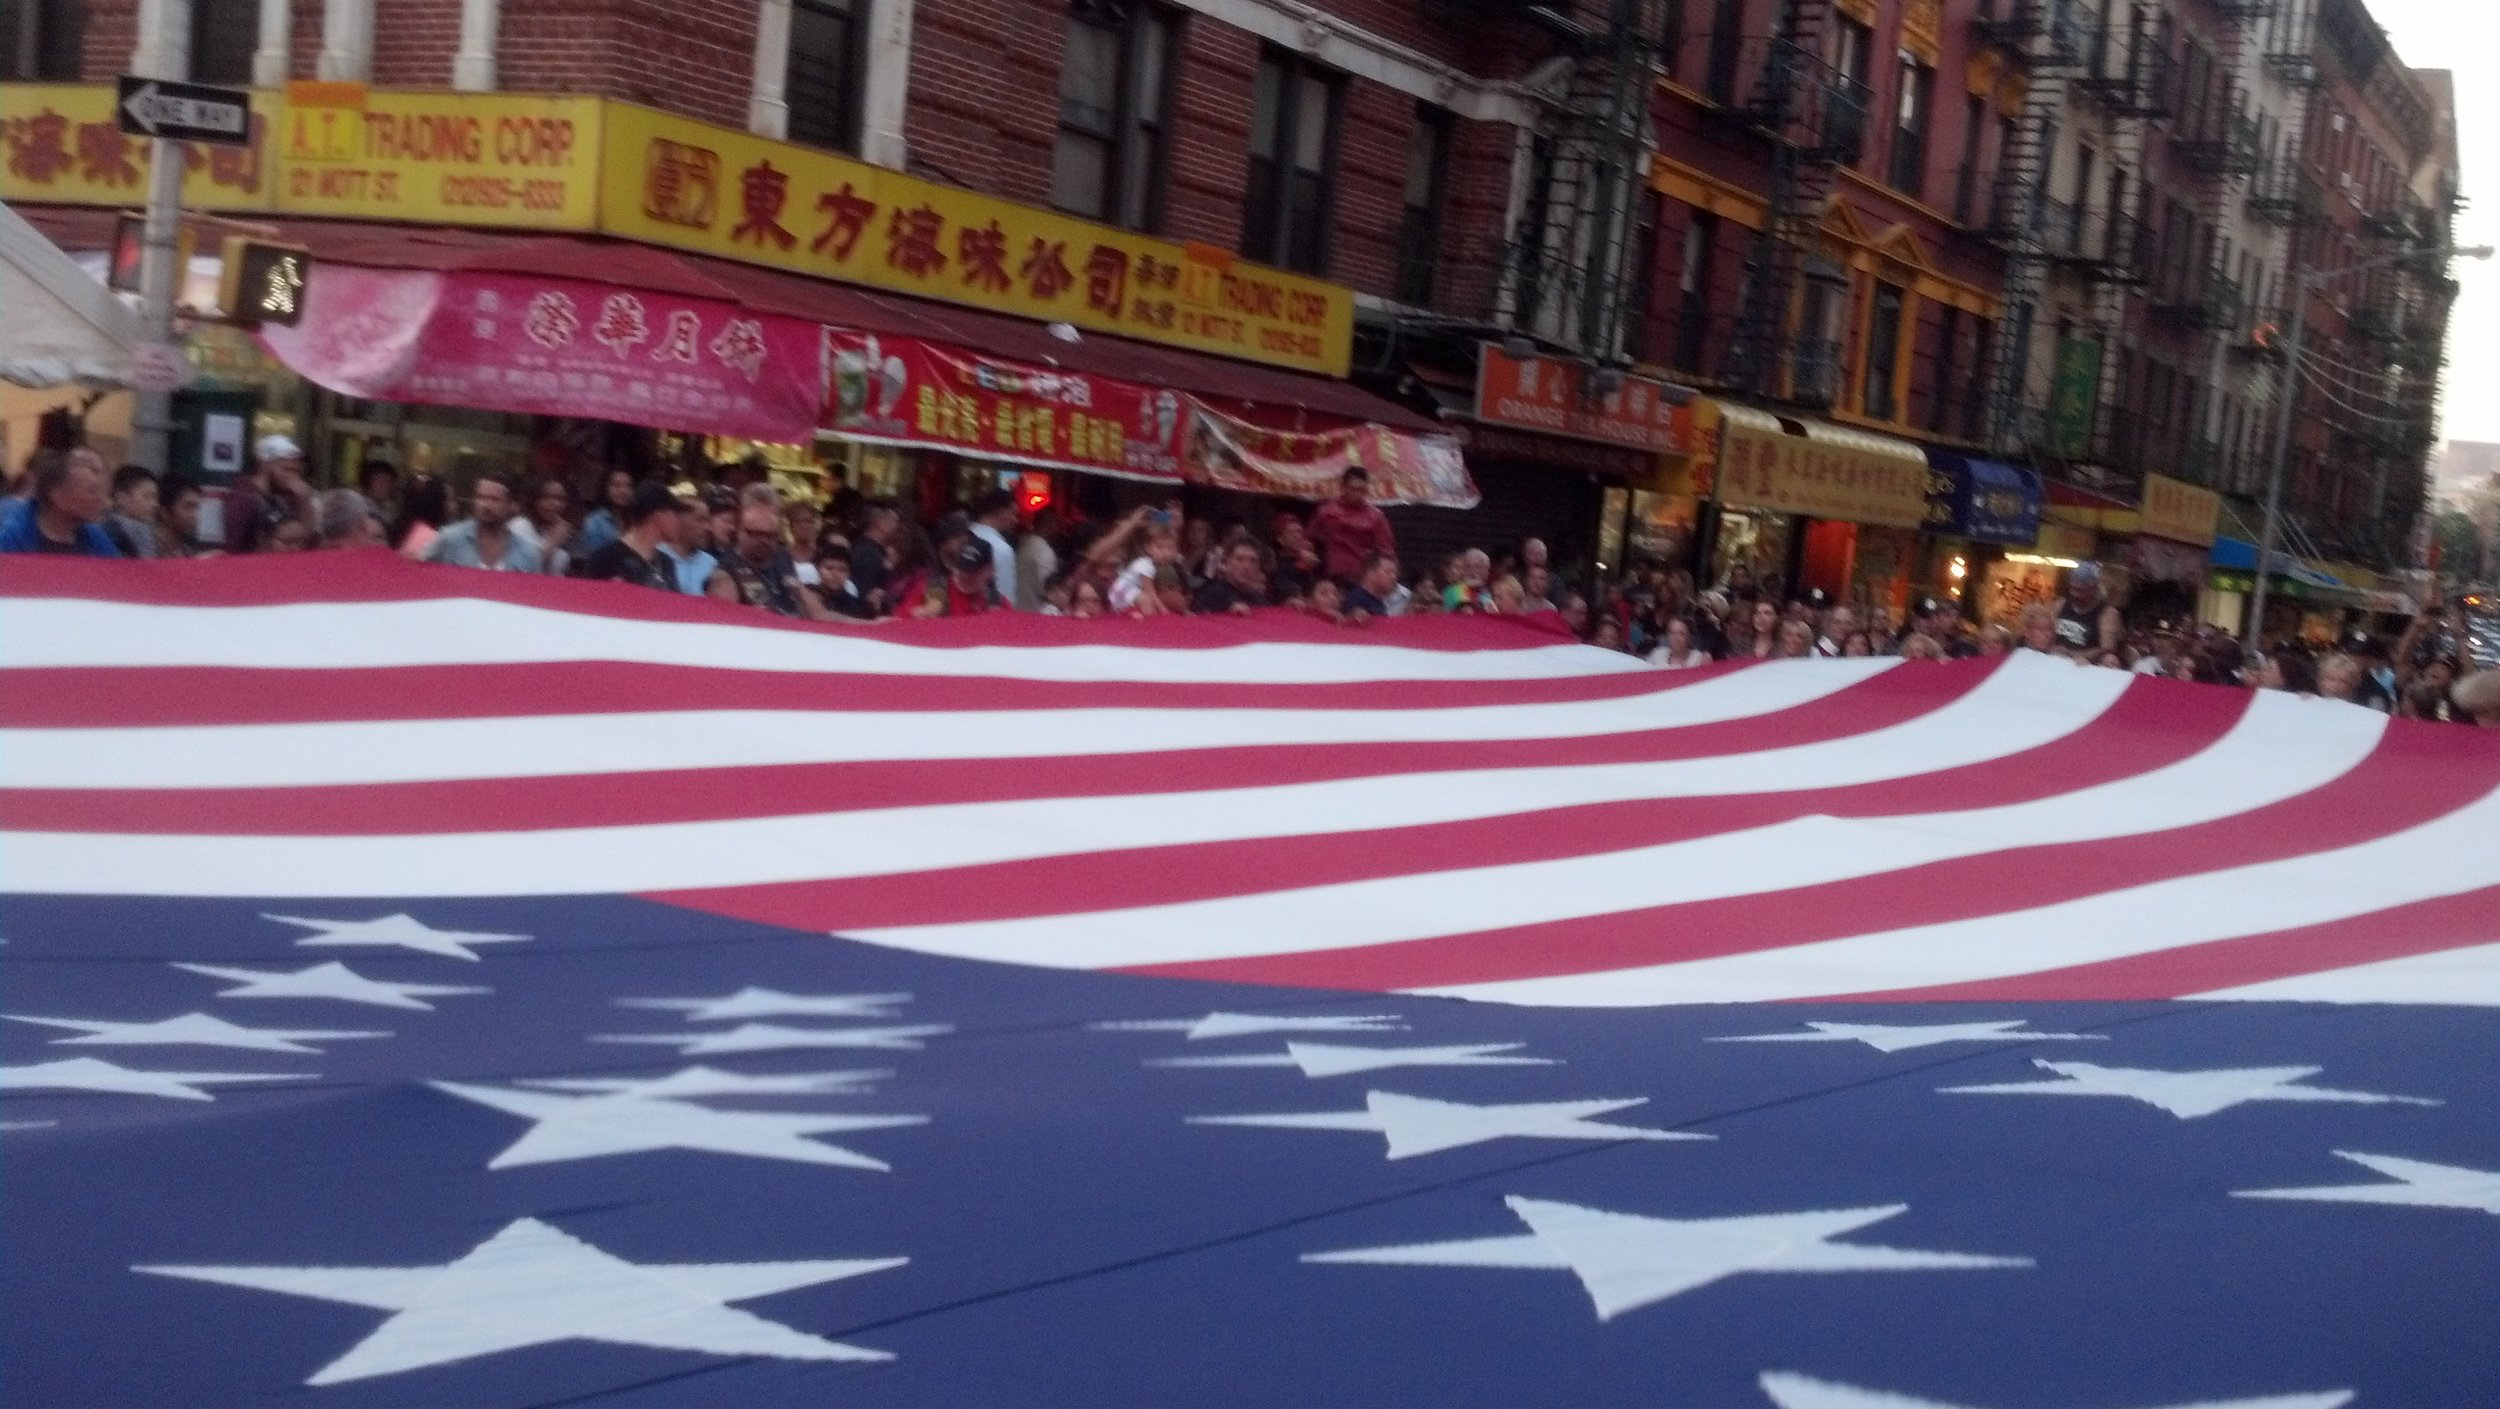 Ground Zero Volunteers & Family Unite Annually @ The September Tribute 2017 - Ground Zero Volunteers Flag, Chinatown, NYC. Photo: Erick Robertson